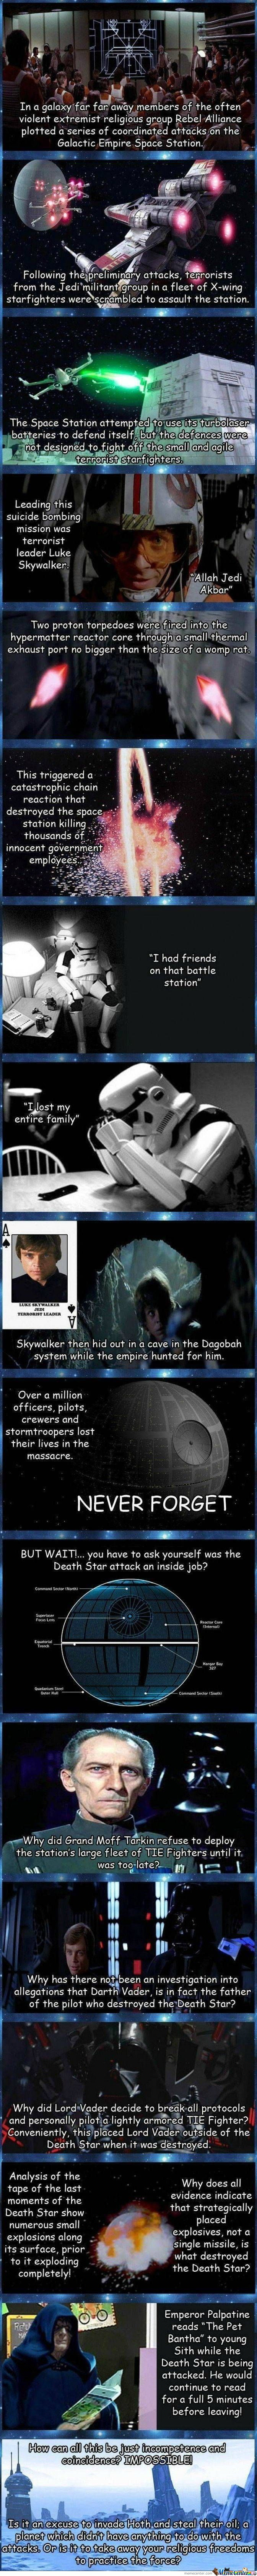 9/11 Conspiracy: Star Wars Version